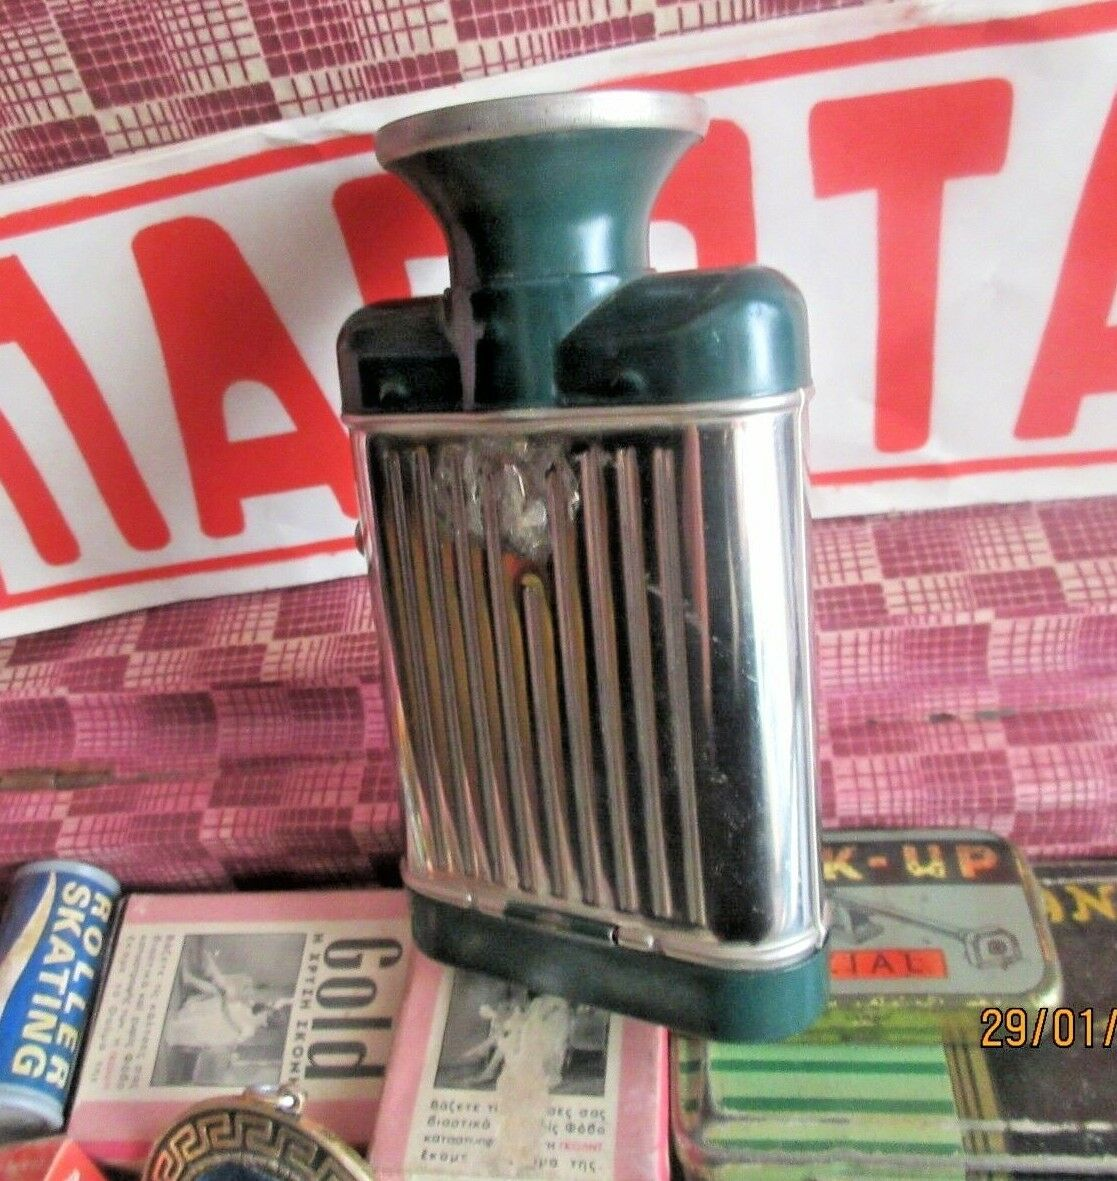 AMAZING VINTAGE FLASHLIGHT - MY DAY - MADE IN CZECHOSLOVAKIA FROM 60s NEW